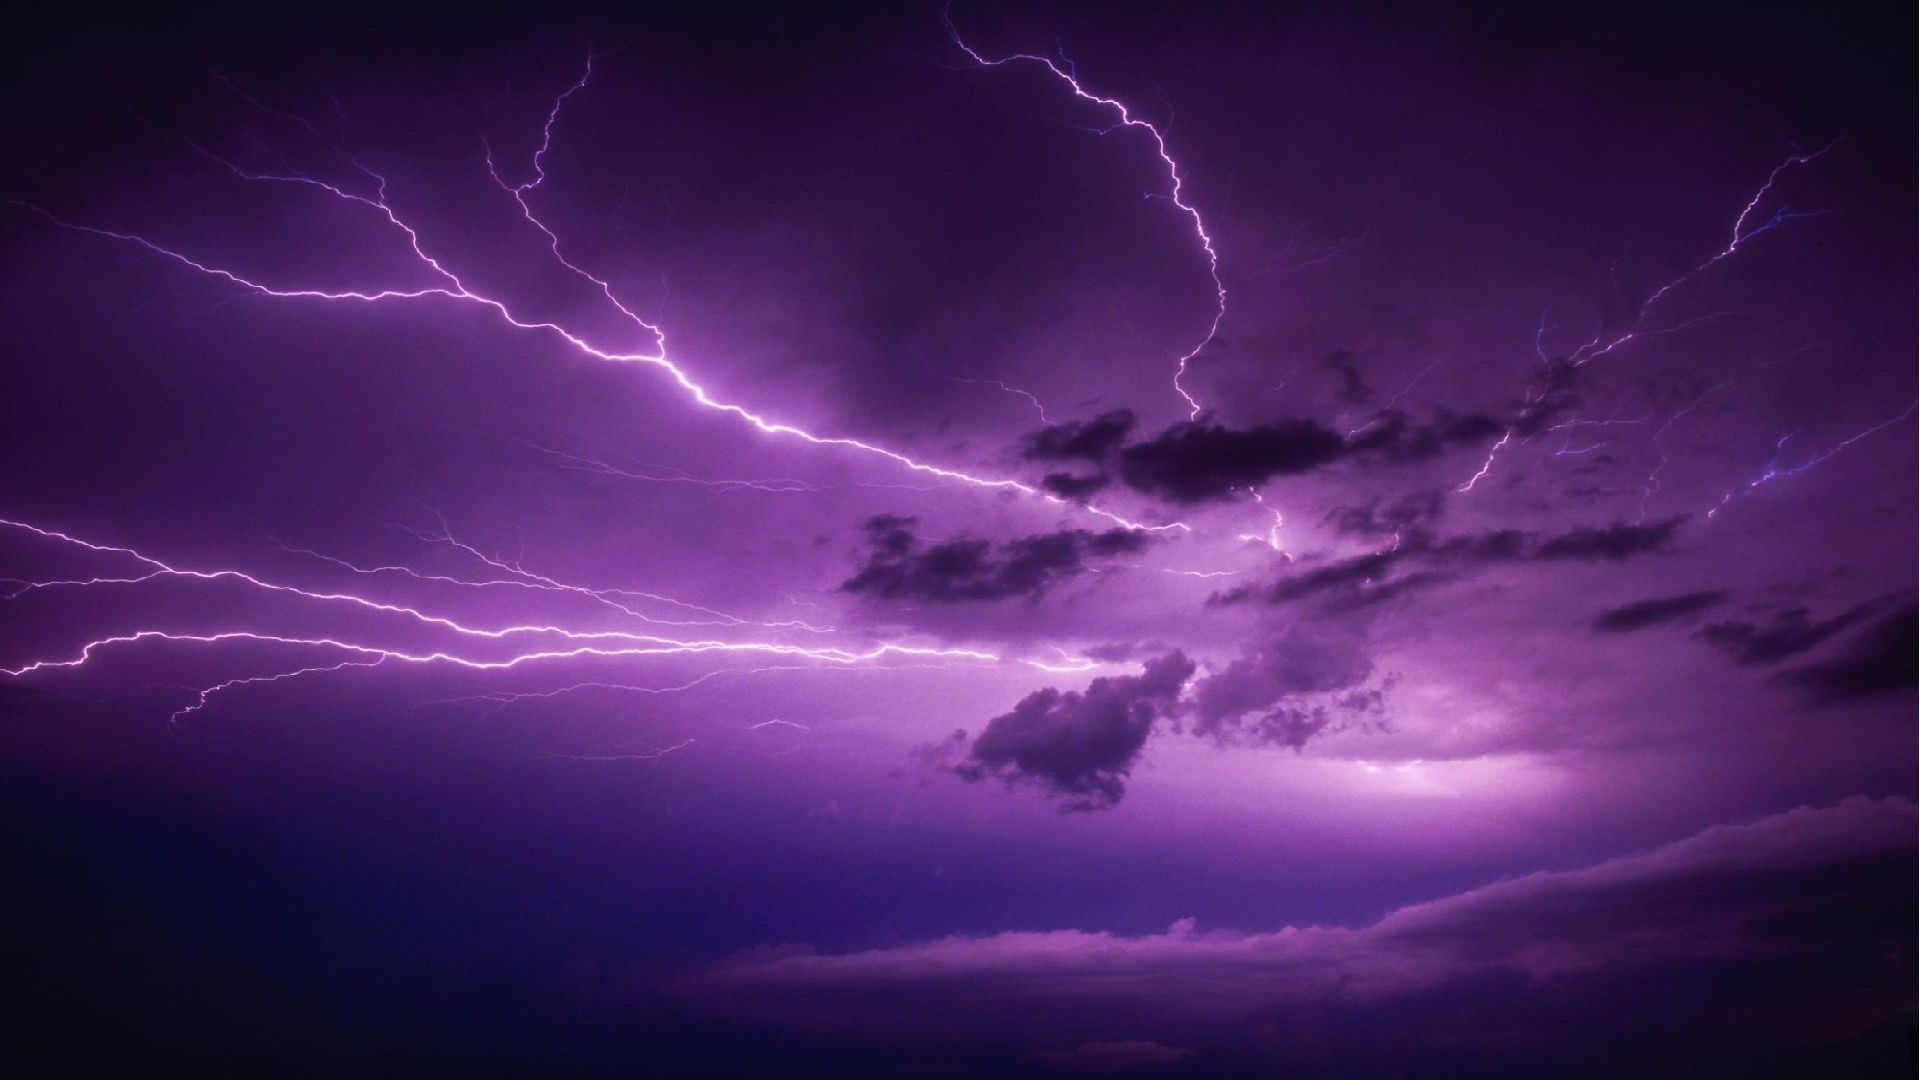 Lightning Backgrounds Android Apps on Google Play